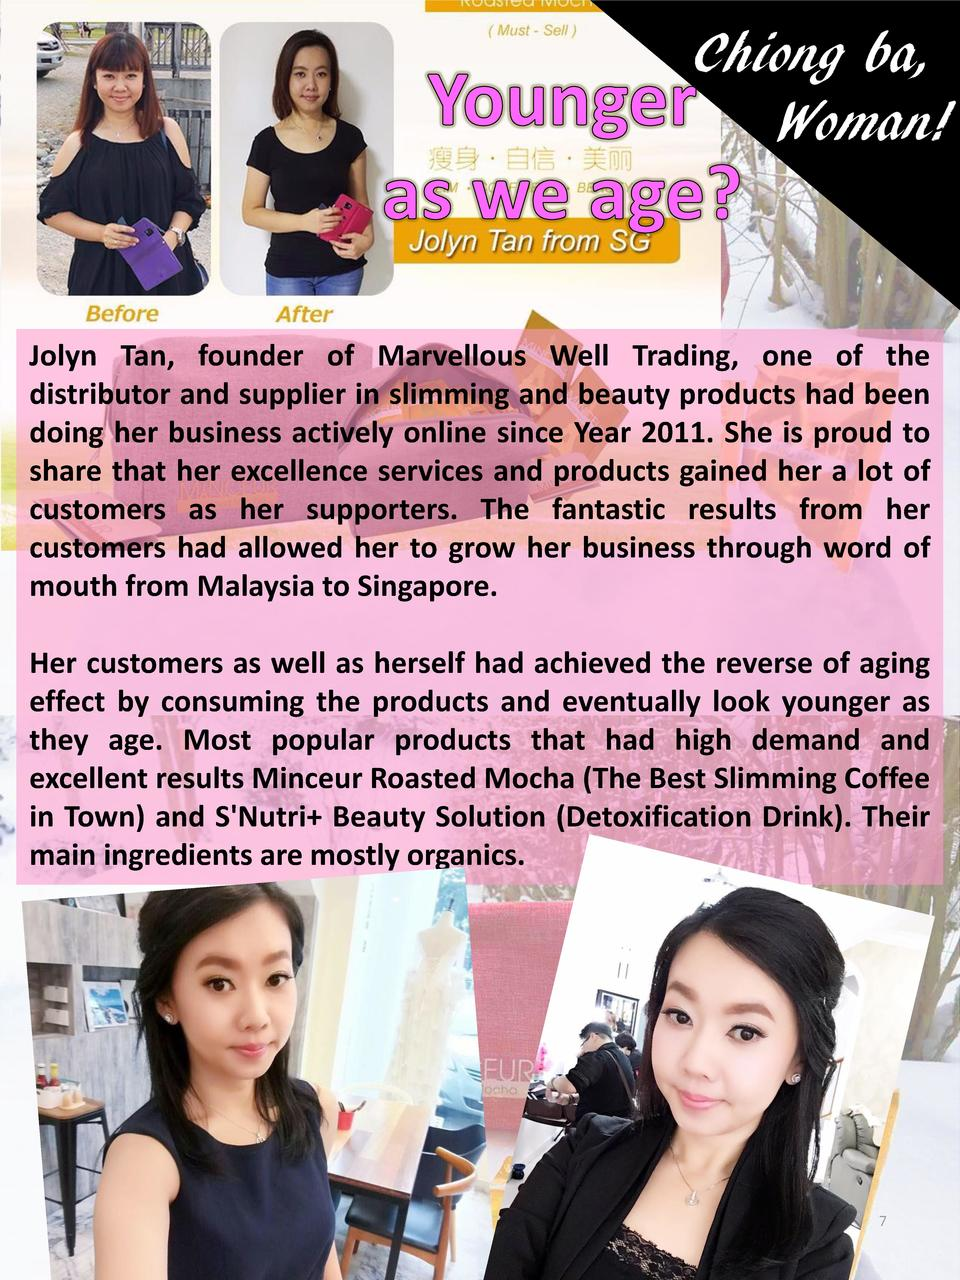 Chiong ba, Woman   Jolyn Tan, founder of Marvellous Well Trading, one of the distributor and supplier in slimming and beau...